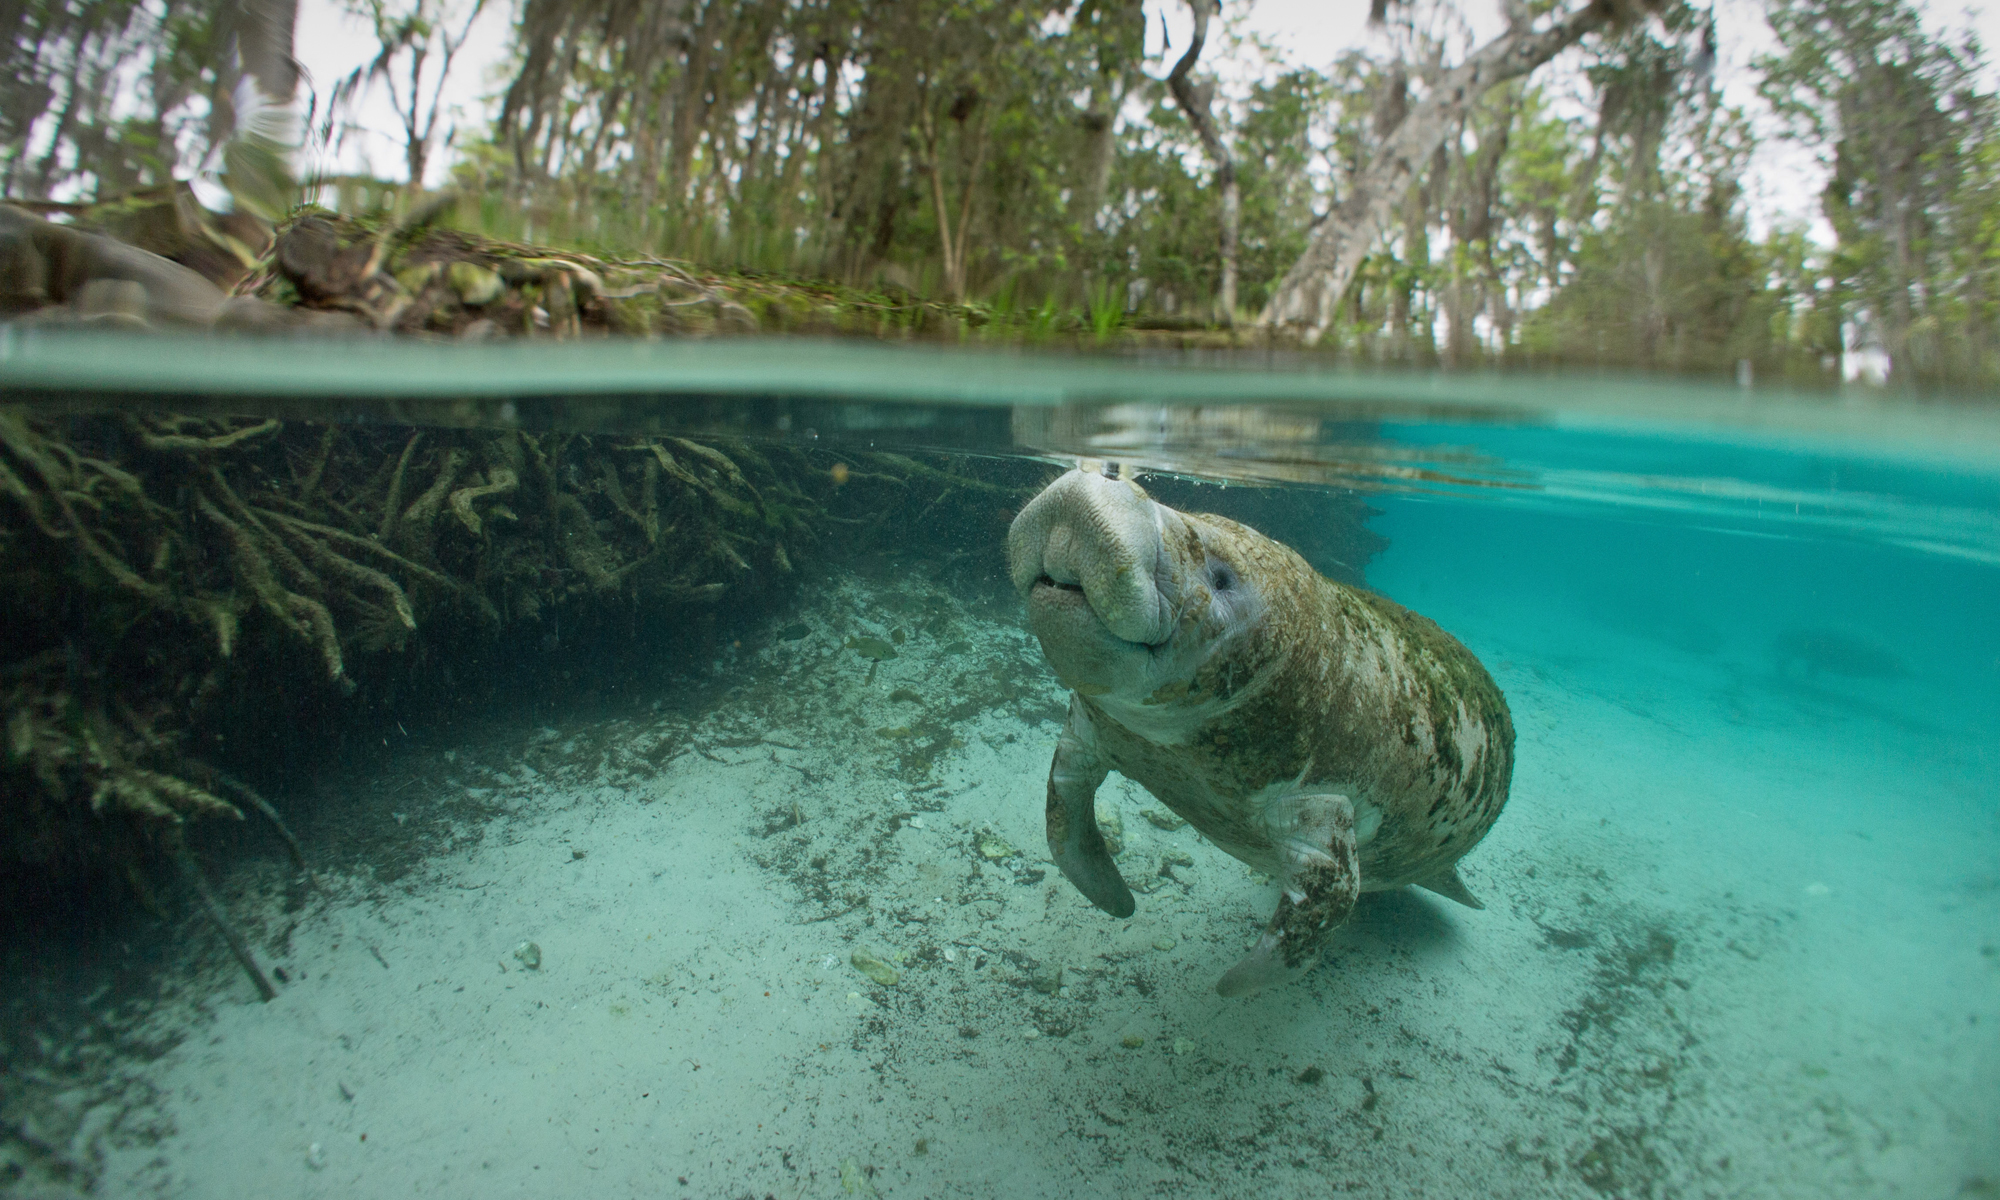 Manatee in Florida spring